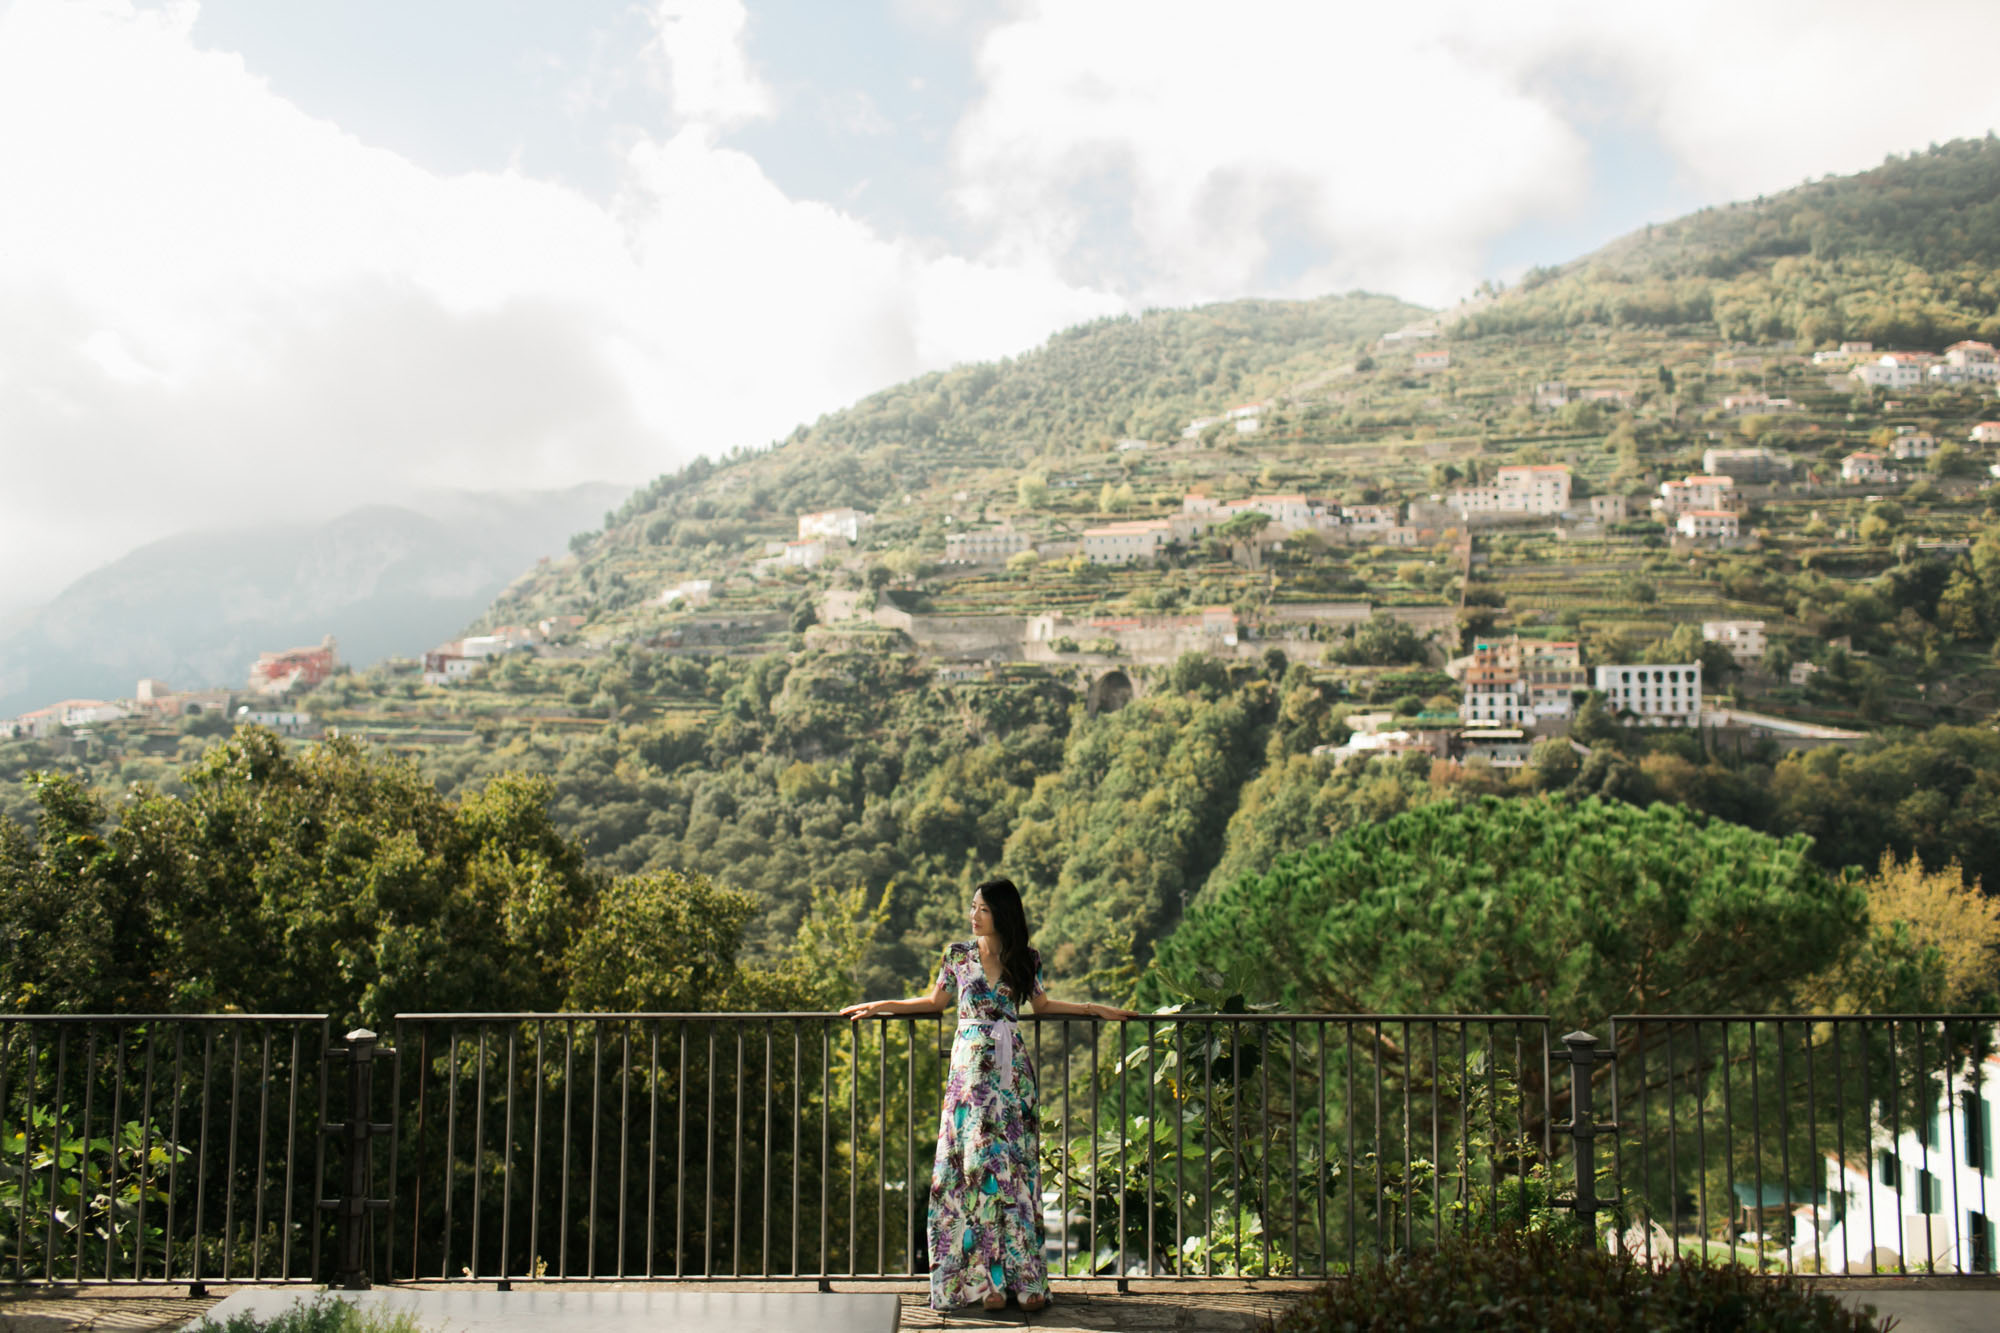 joeewong-reke-italy-amalfi-coast-positano-honeymoon-03